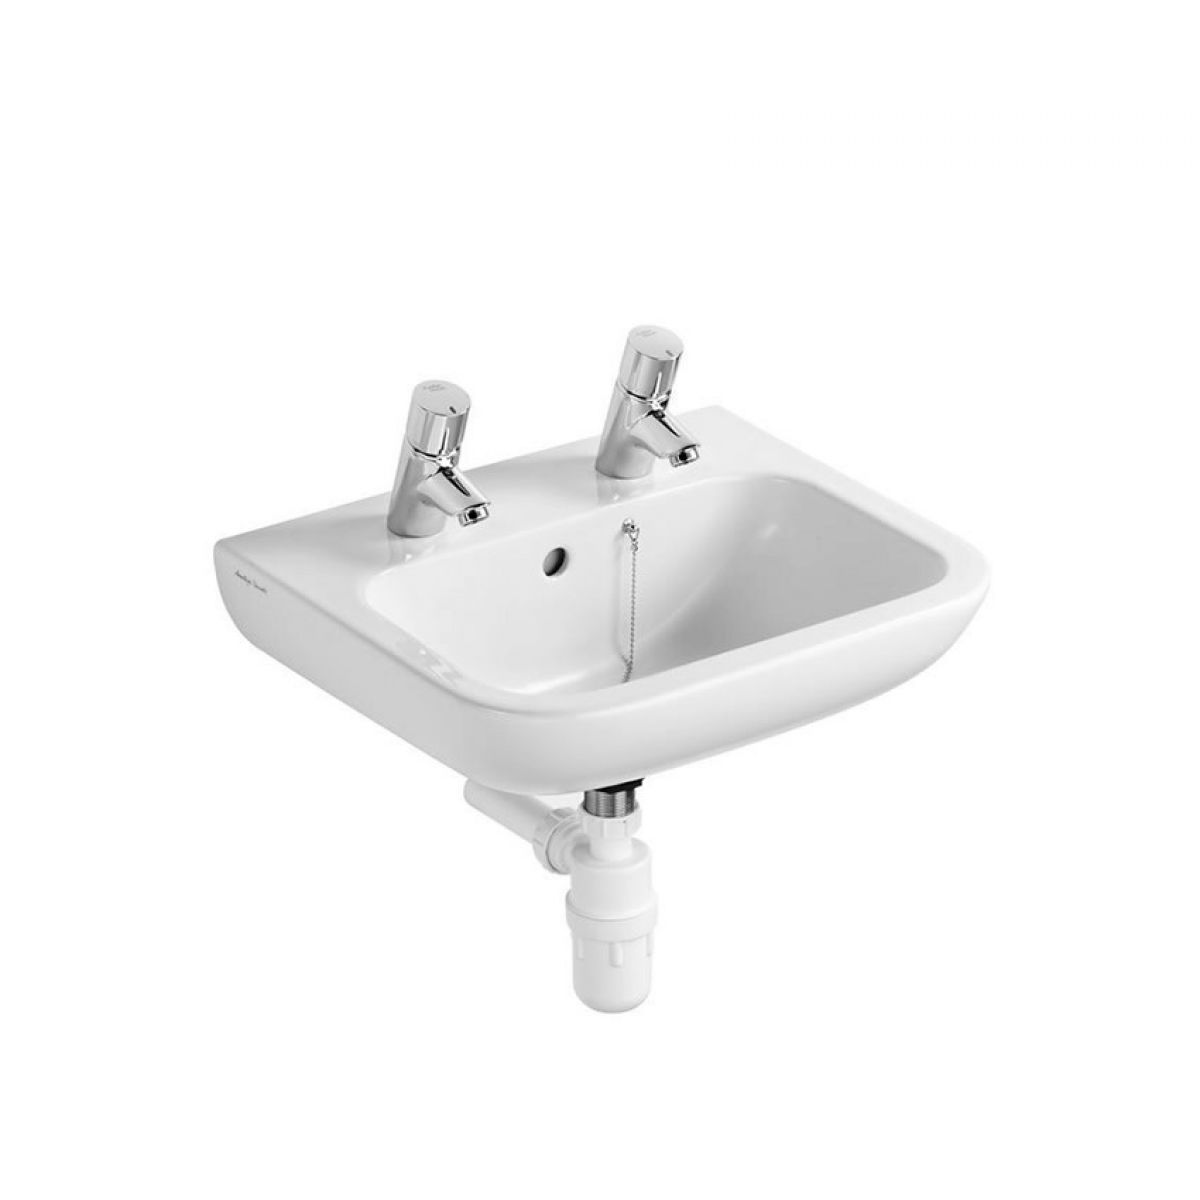 Wash Basin Wall Hung : ... wall hung basin home bathrooms basins and sinks wall hung pedestal